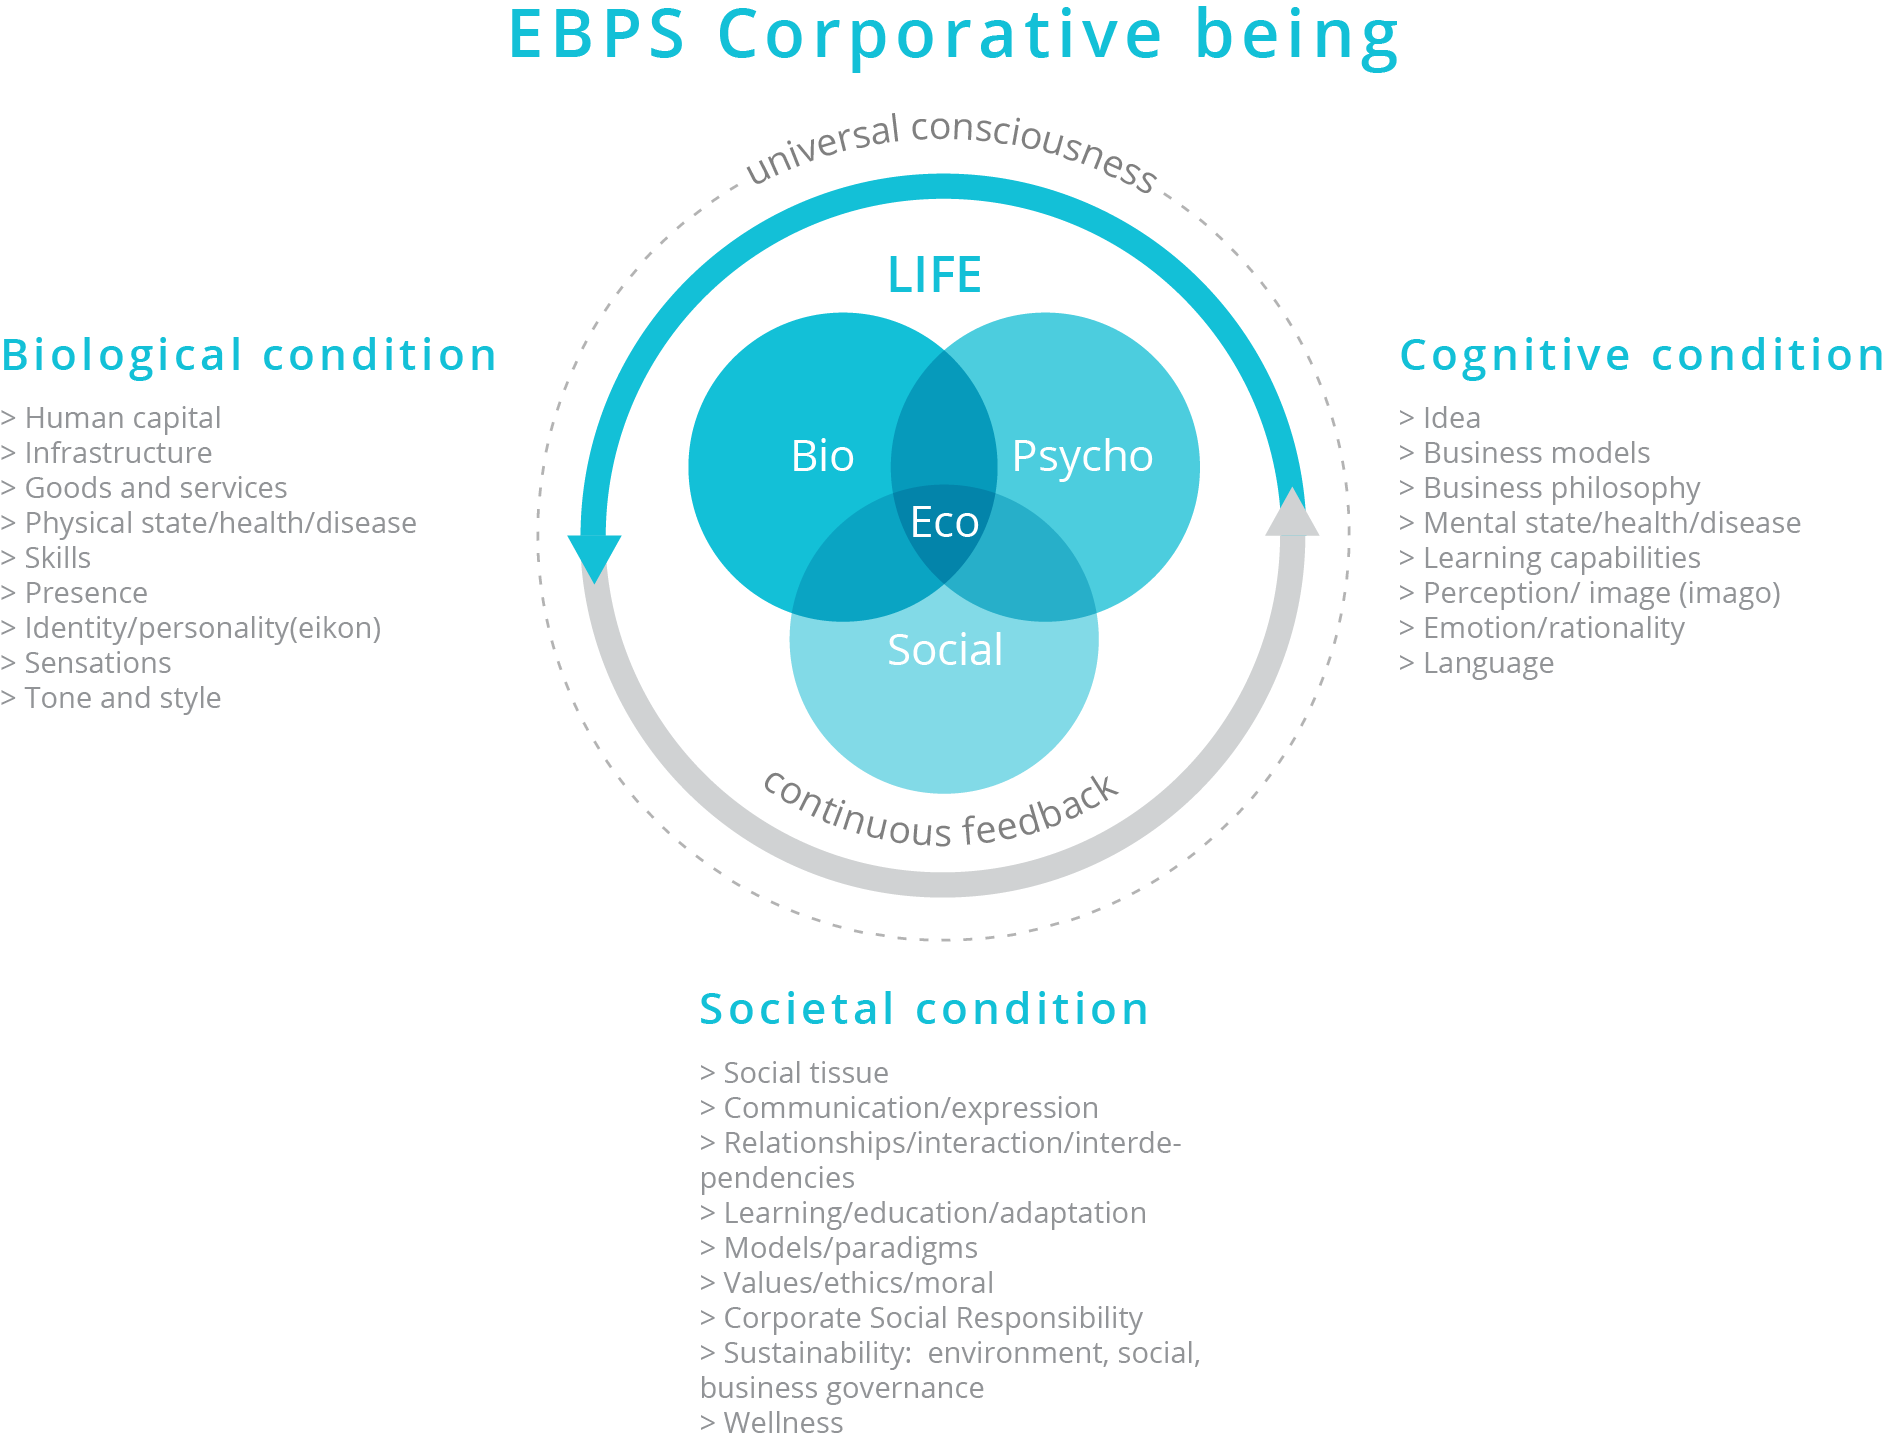 Corporative EBPS Being